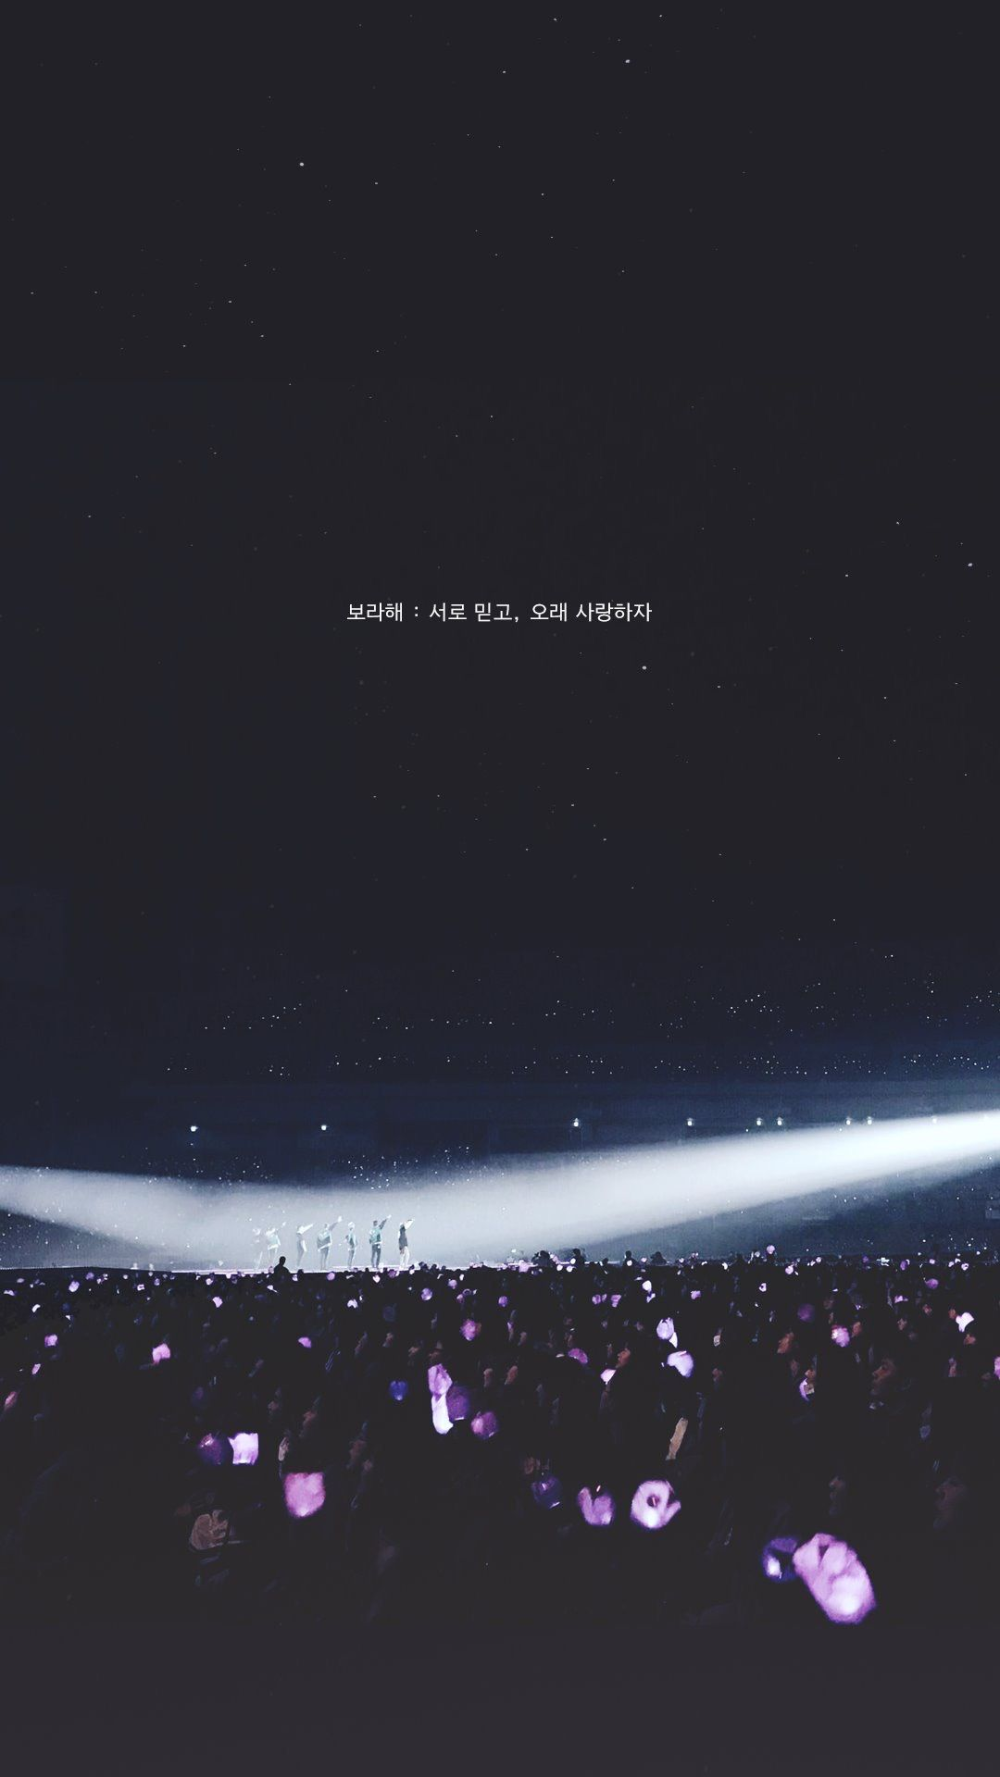 Purple Aesthetic Bts Lyrics Google Search In 2020 Bts Wallpaper Bts Wallpaper Lyrics Bts Backgrounds